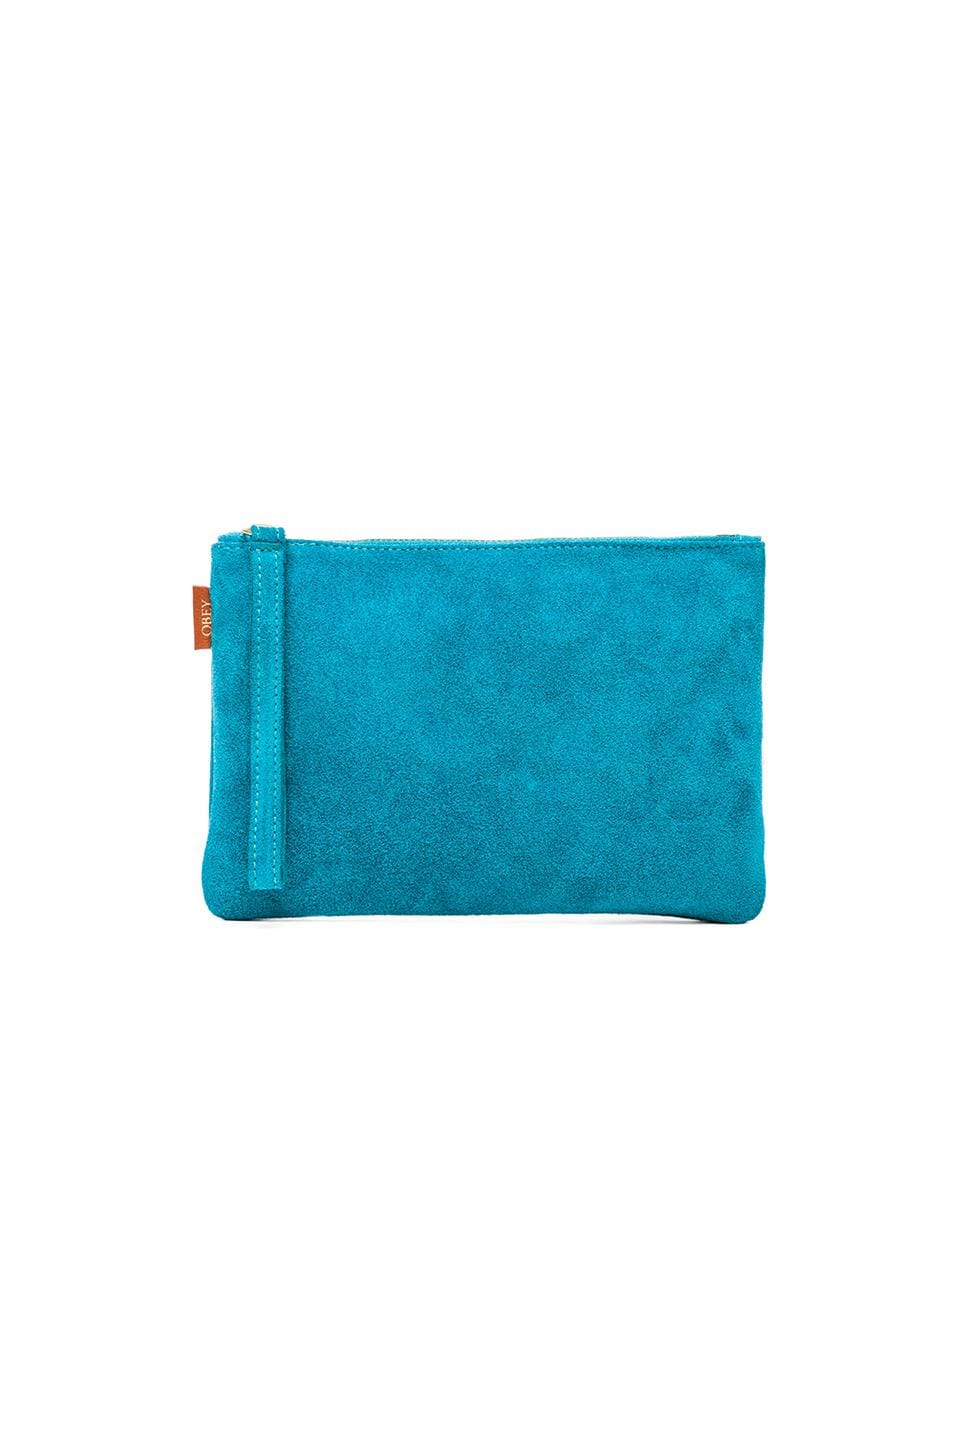 Obey Adieu Suede Clutch Pouch in Turquoise